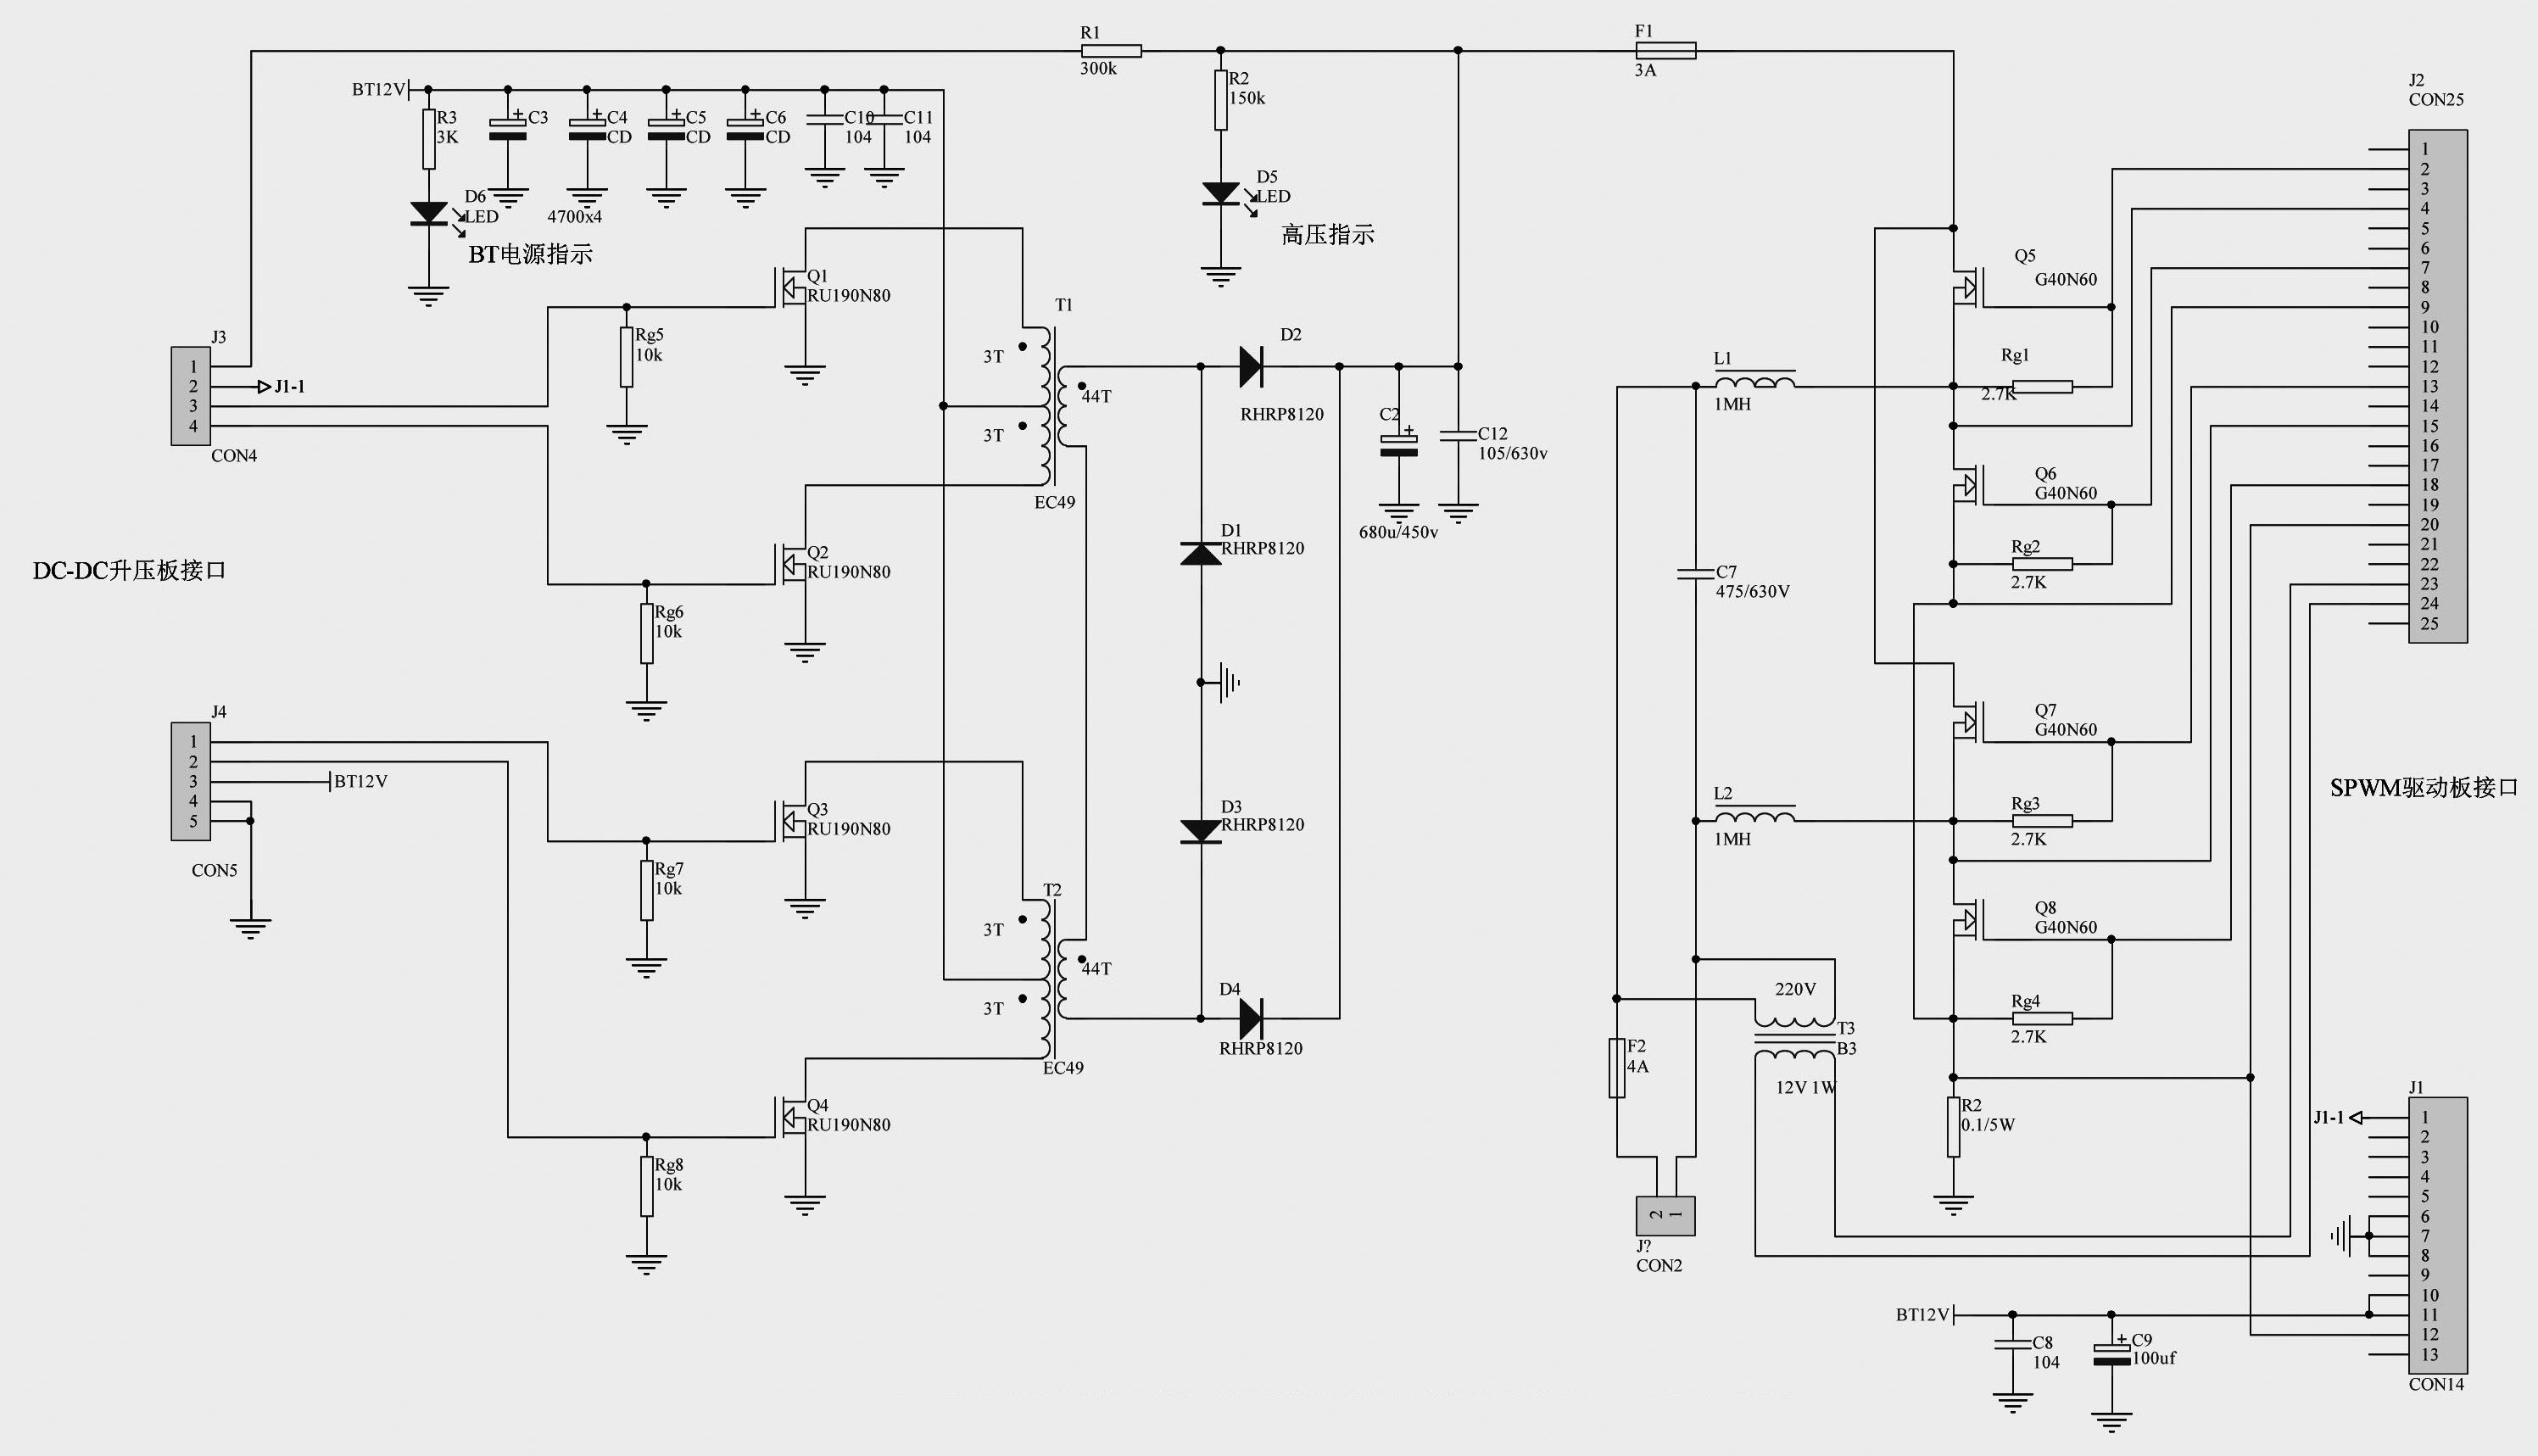 1000 Watt Inverter Circuit Diagrams Wiring Library High Power Fm Transmitter Diagram Master Board